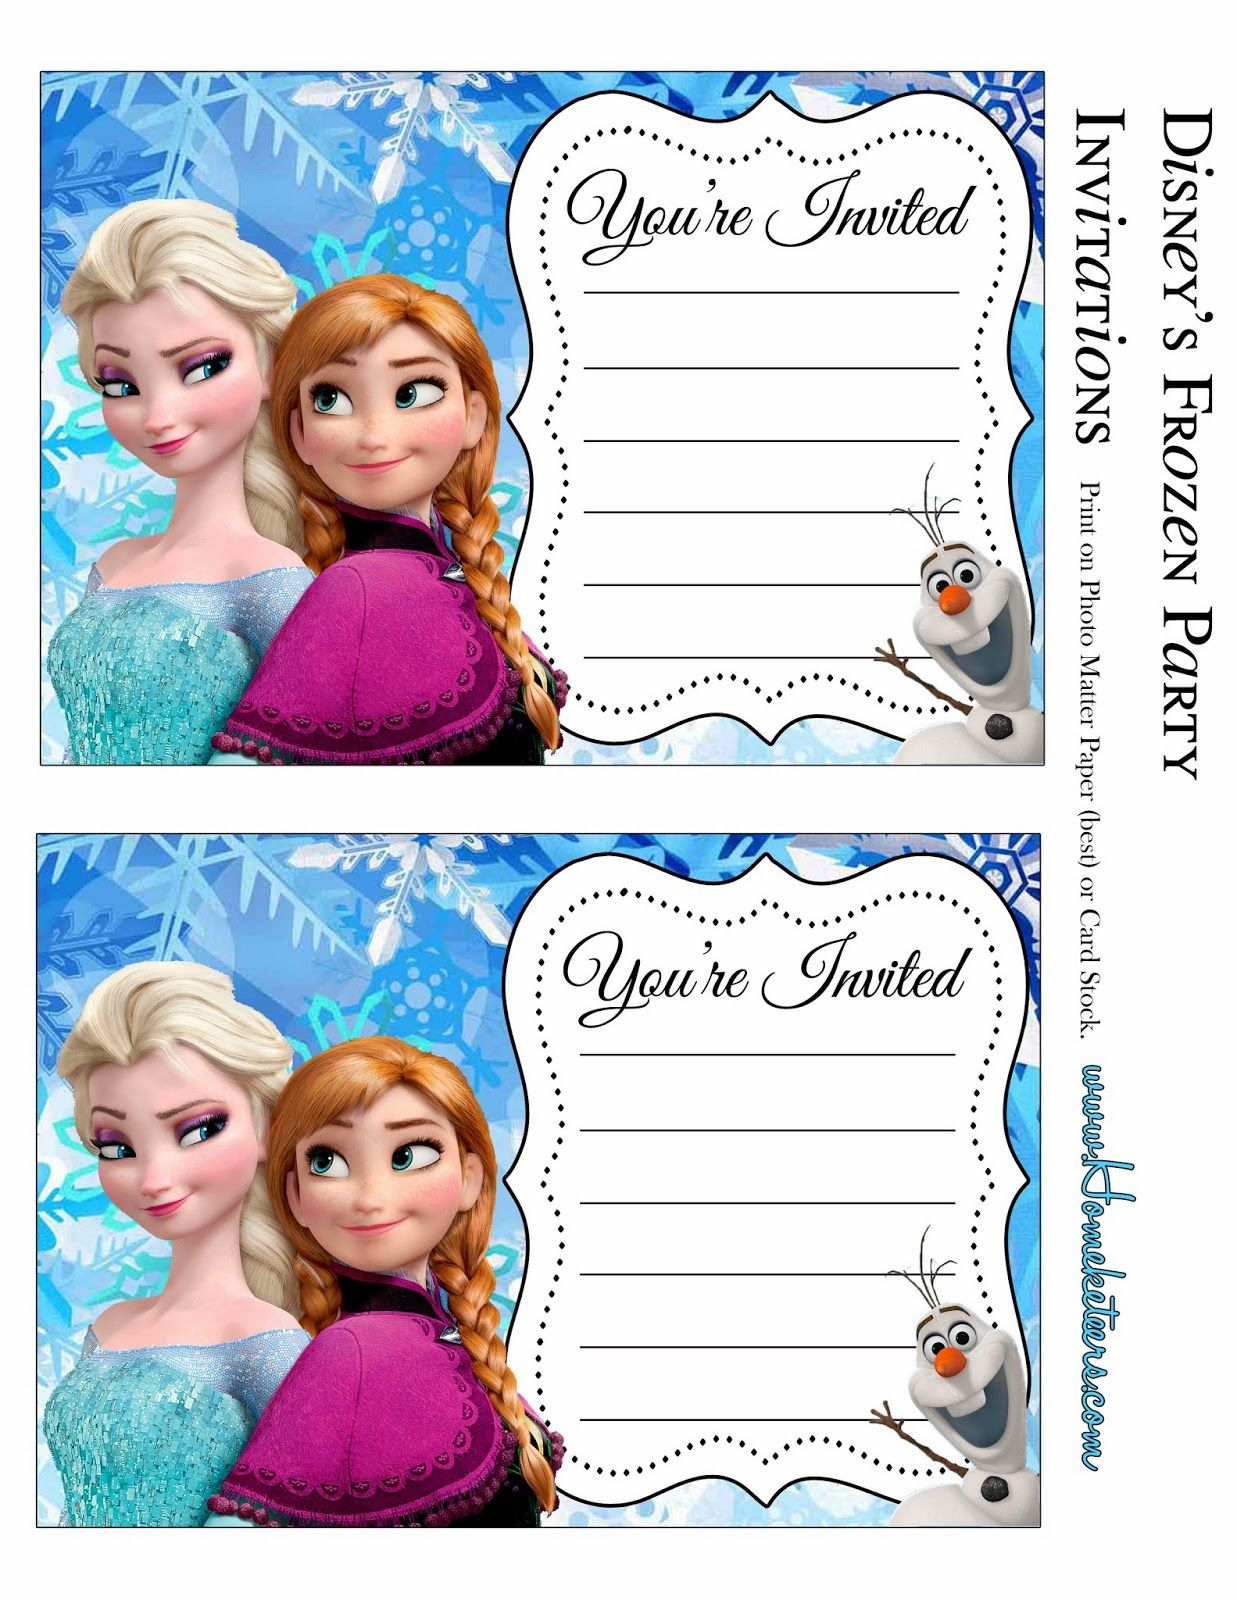 Frozen Party: Free Printable Invitations. - Is it for PARTIES? Is it ...